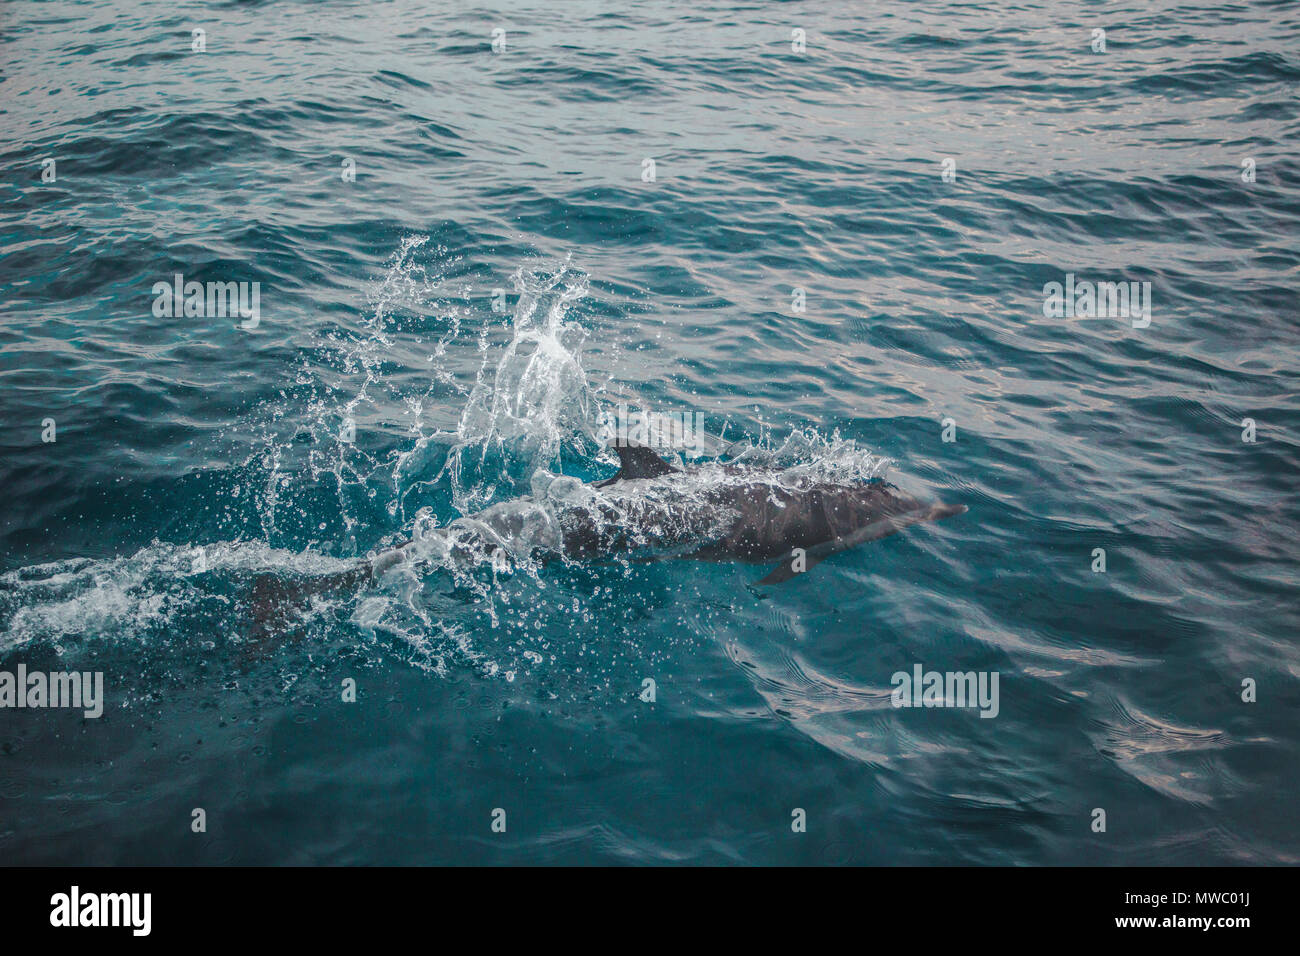 Atlantic dolphin breaking the surface of the water in the Caribbean Sea - Stock Image